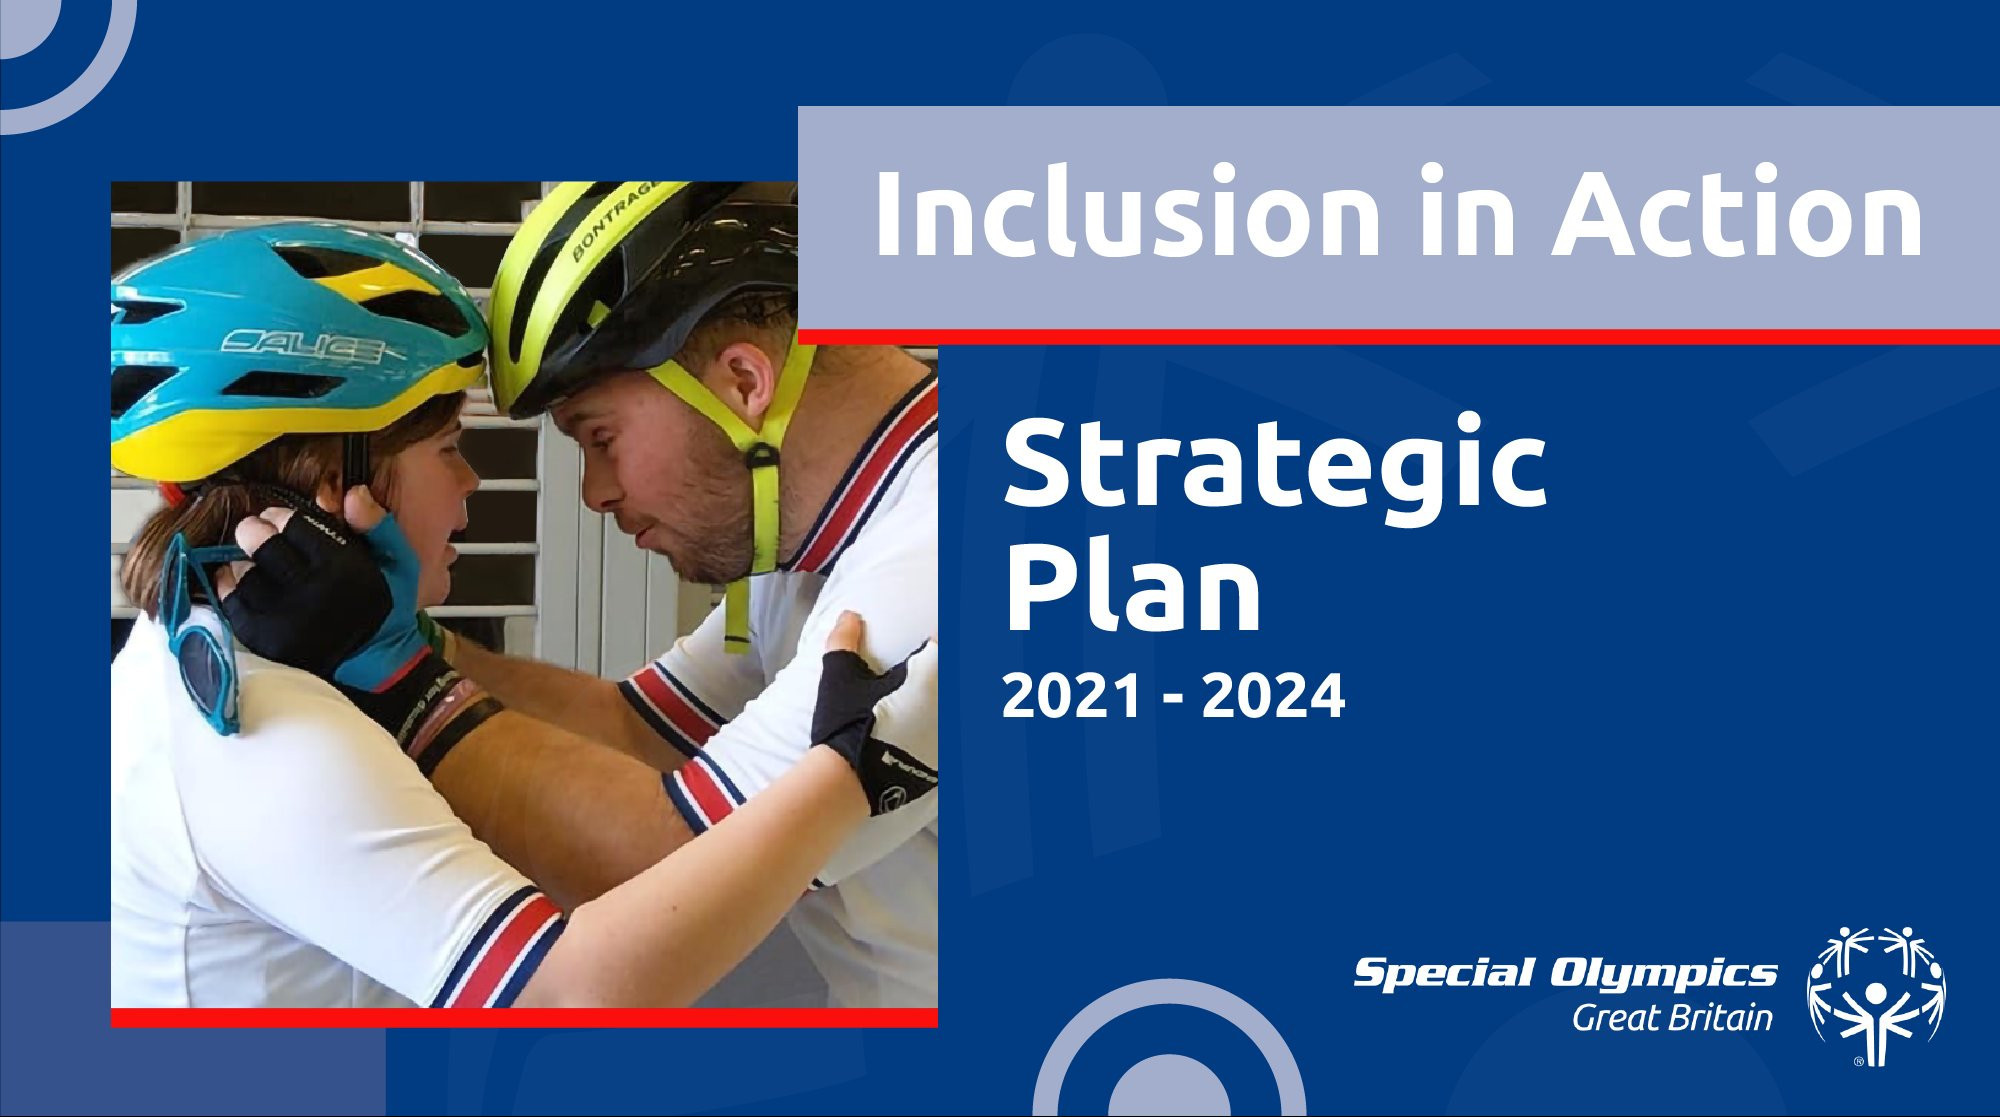 Special Olympics GB announces four-year Inclusion in Action strategy